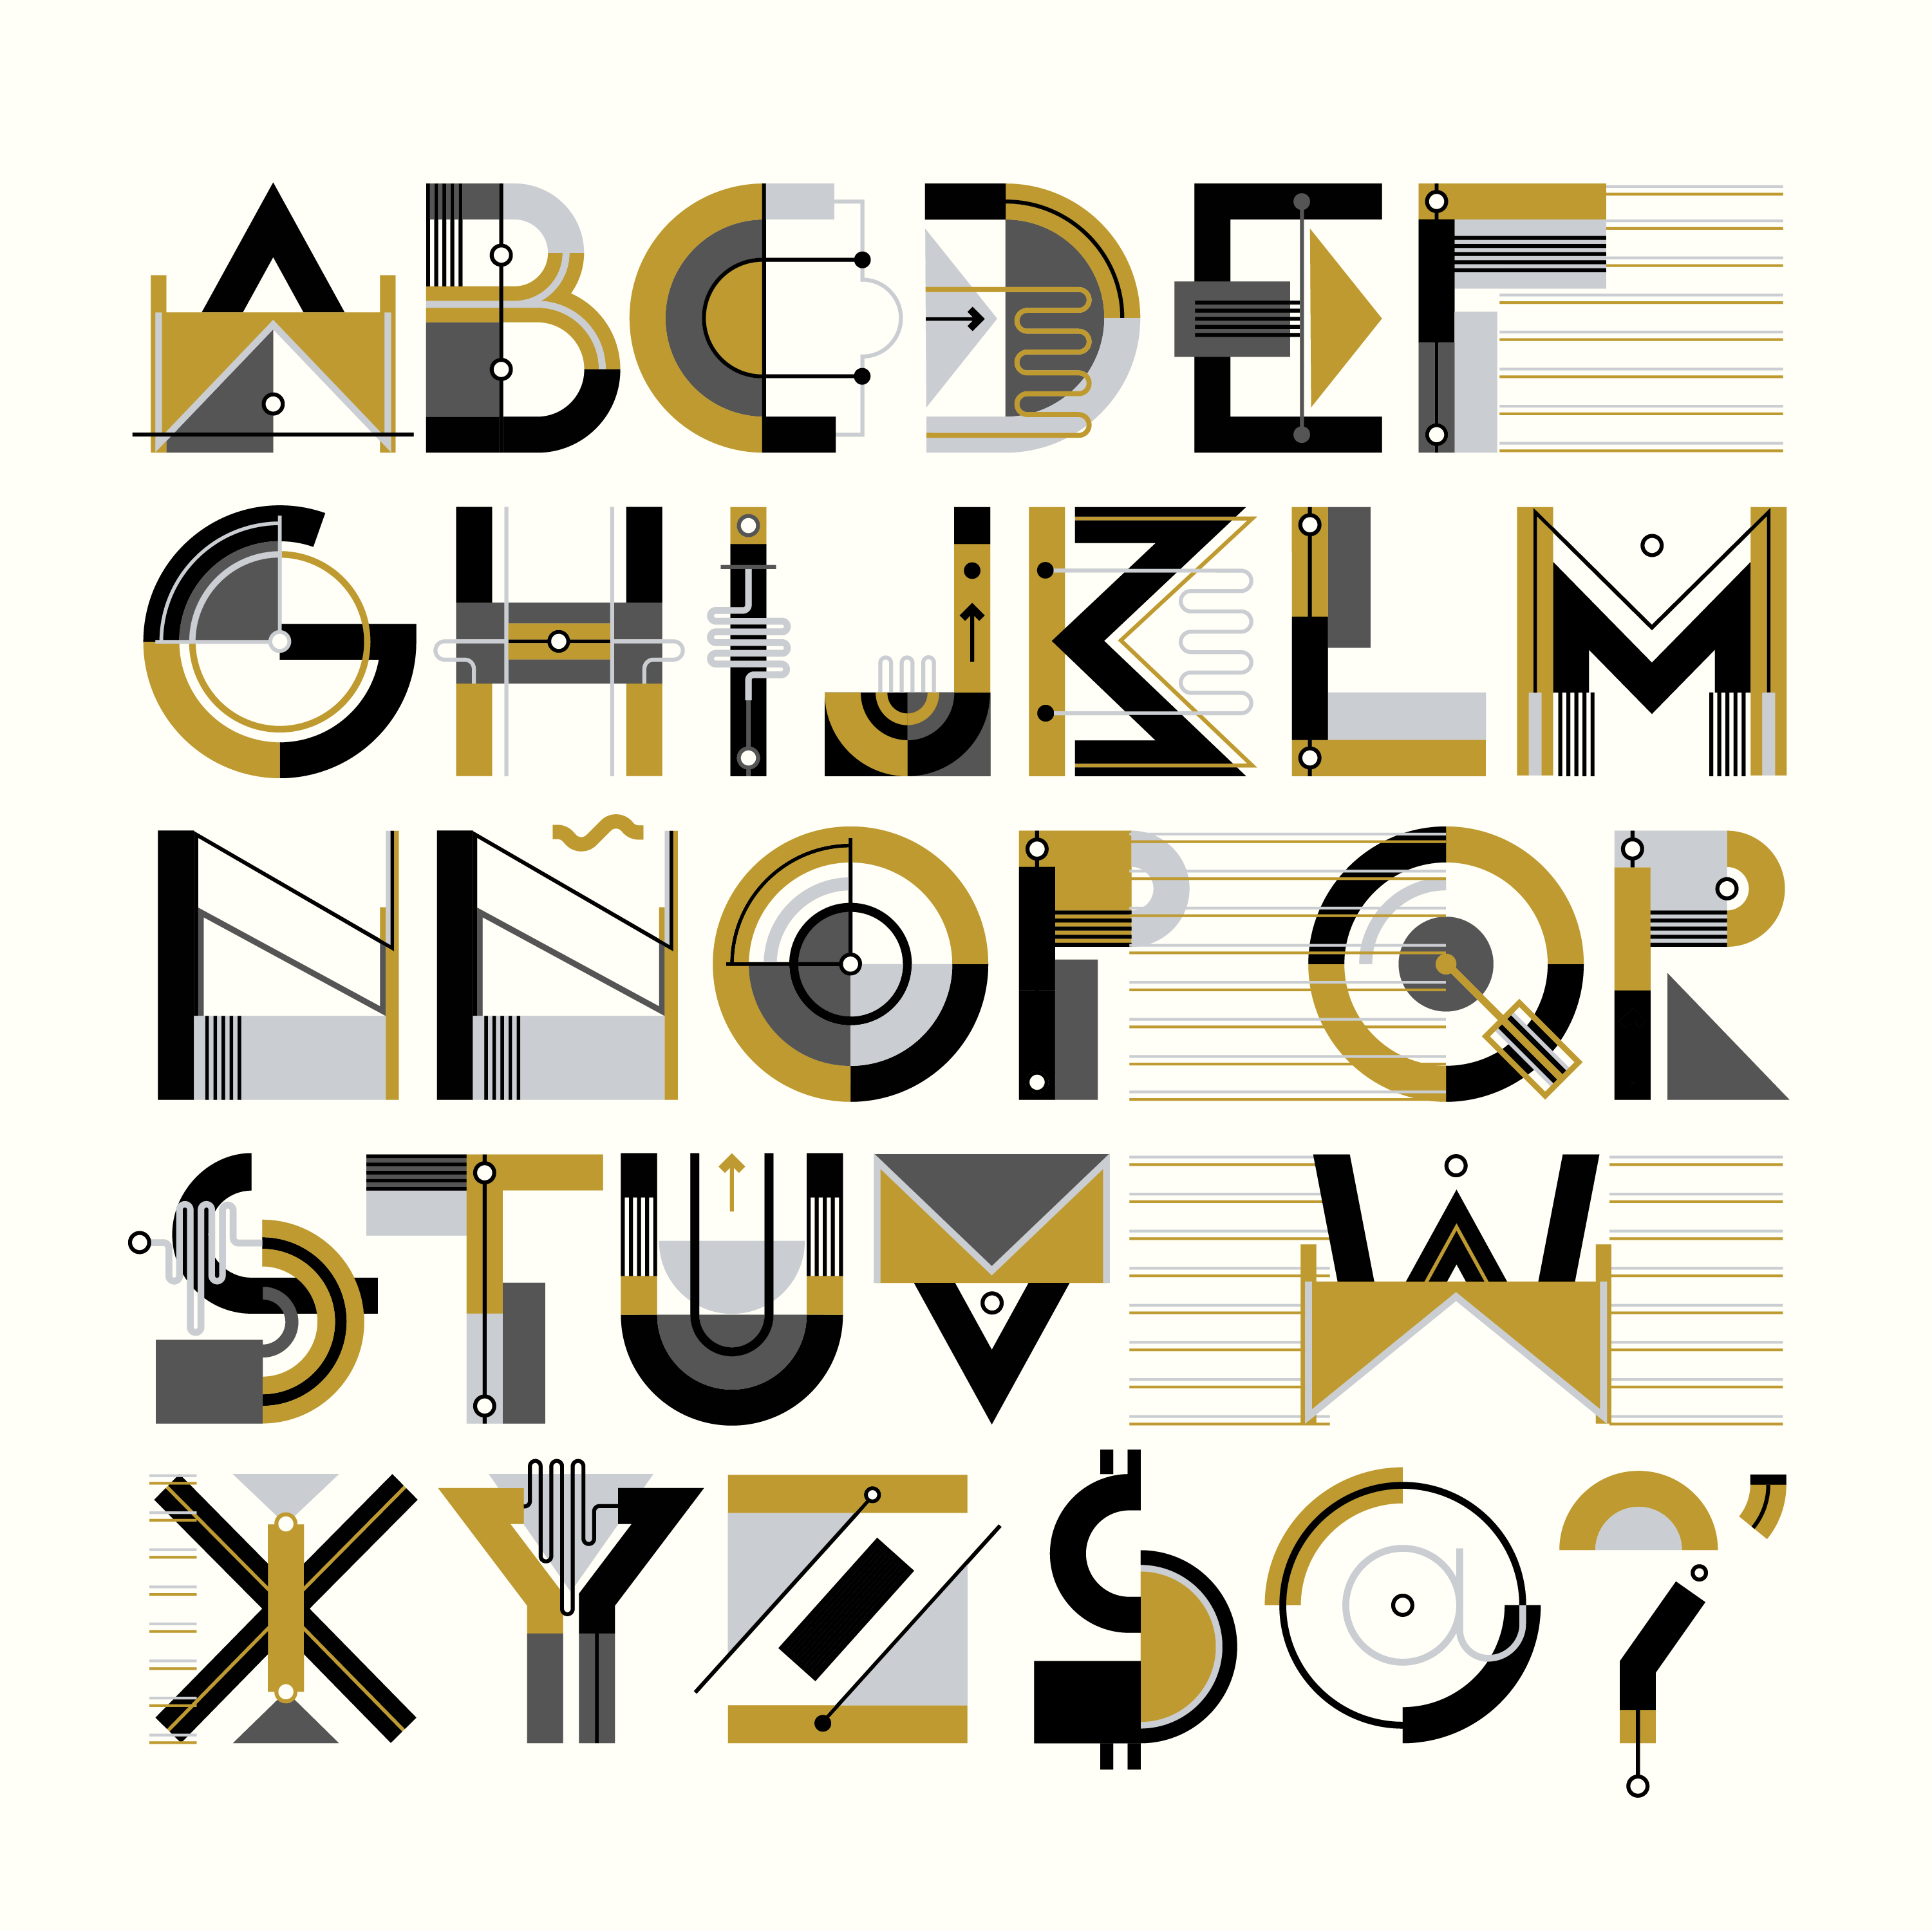 Máquina is a collaborative typeface based on the lettering